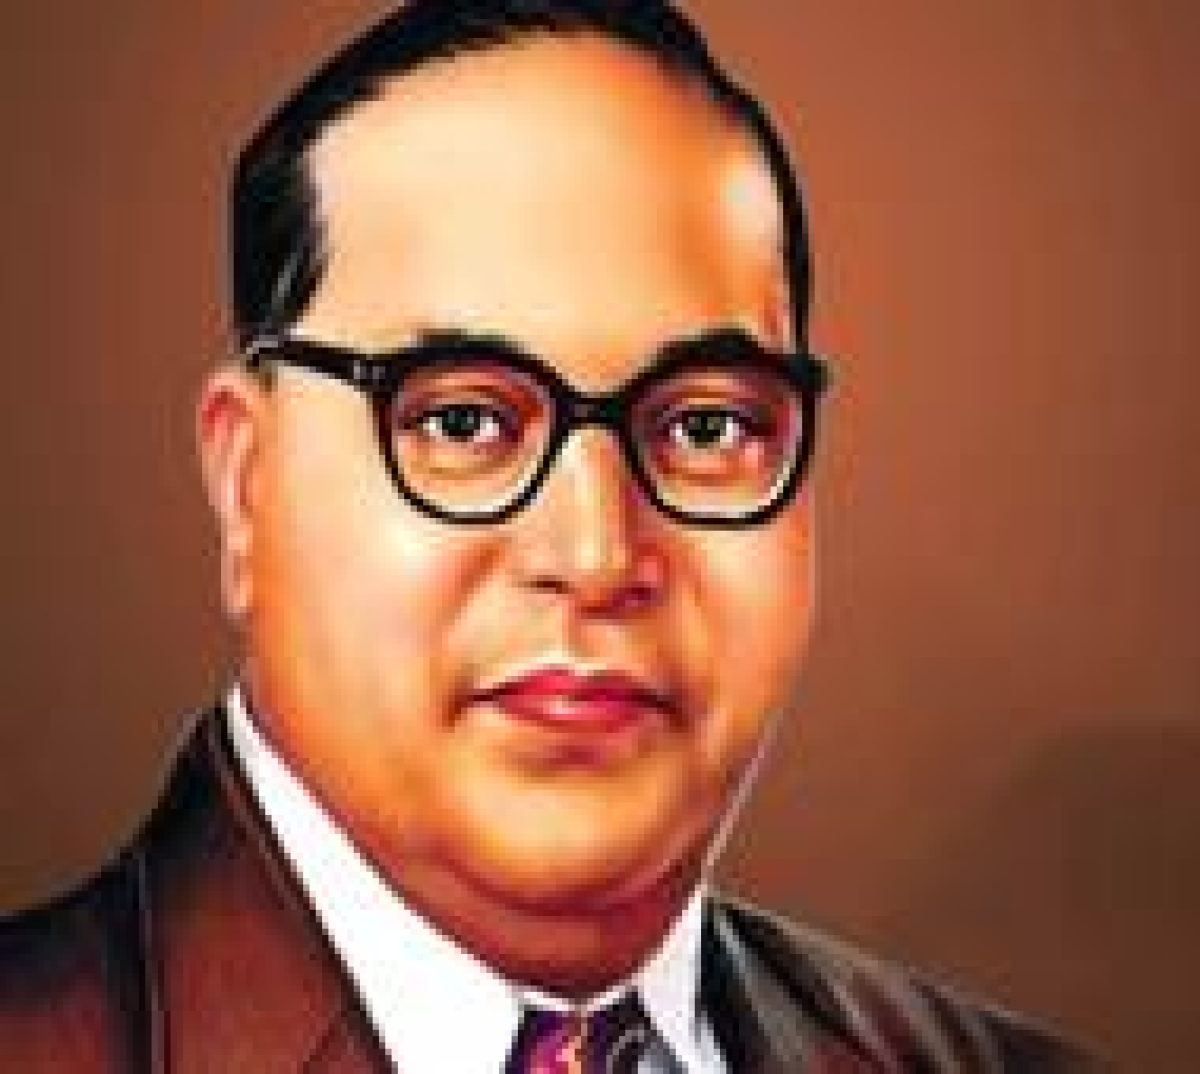 Dr Babasaheb Ambedkar Mahaparinirvan Diwas: Significance of the day, wishes and quotes to share on SMS, WhatsApp, Facebook and Instagram